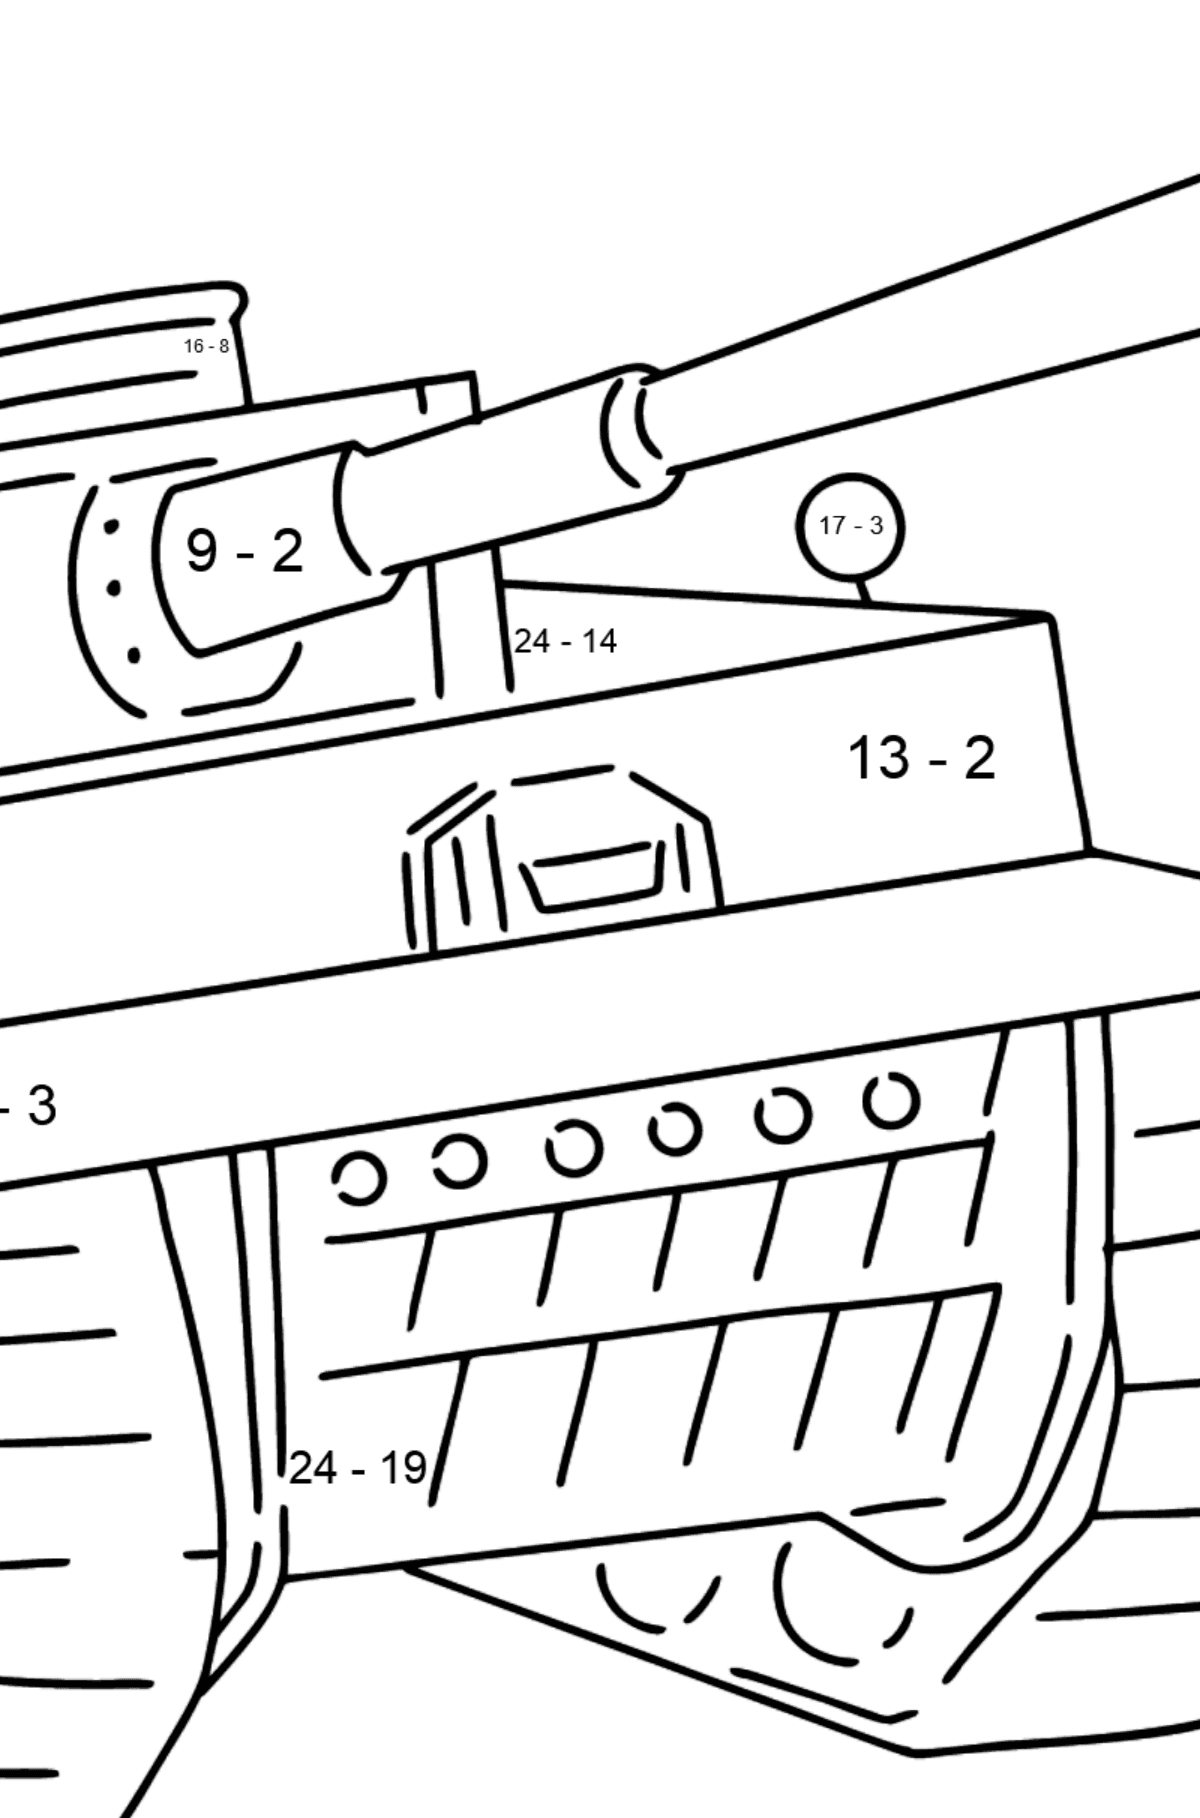 Tank Panther coloring page - Math Coloring - Subtraction for Kids